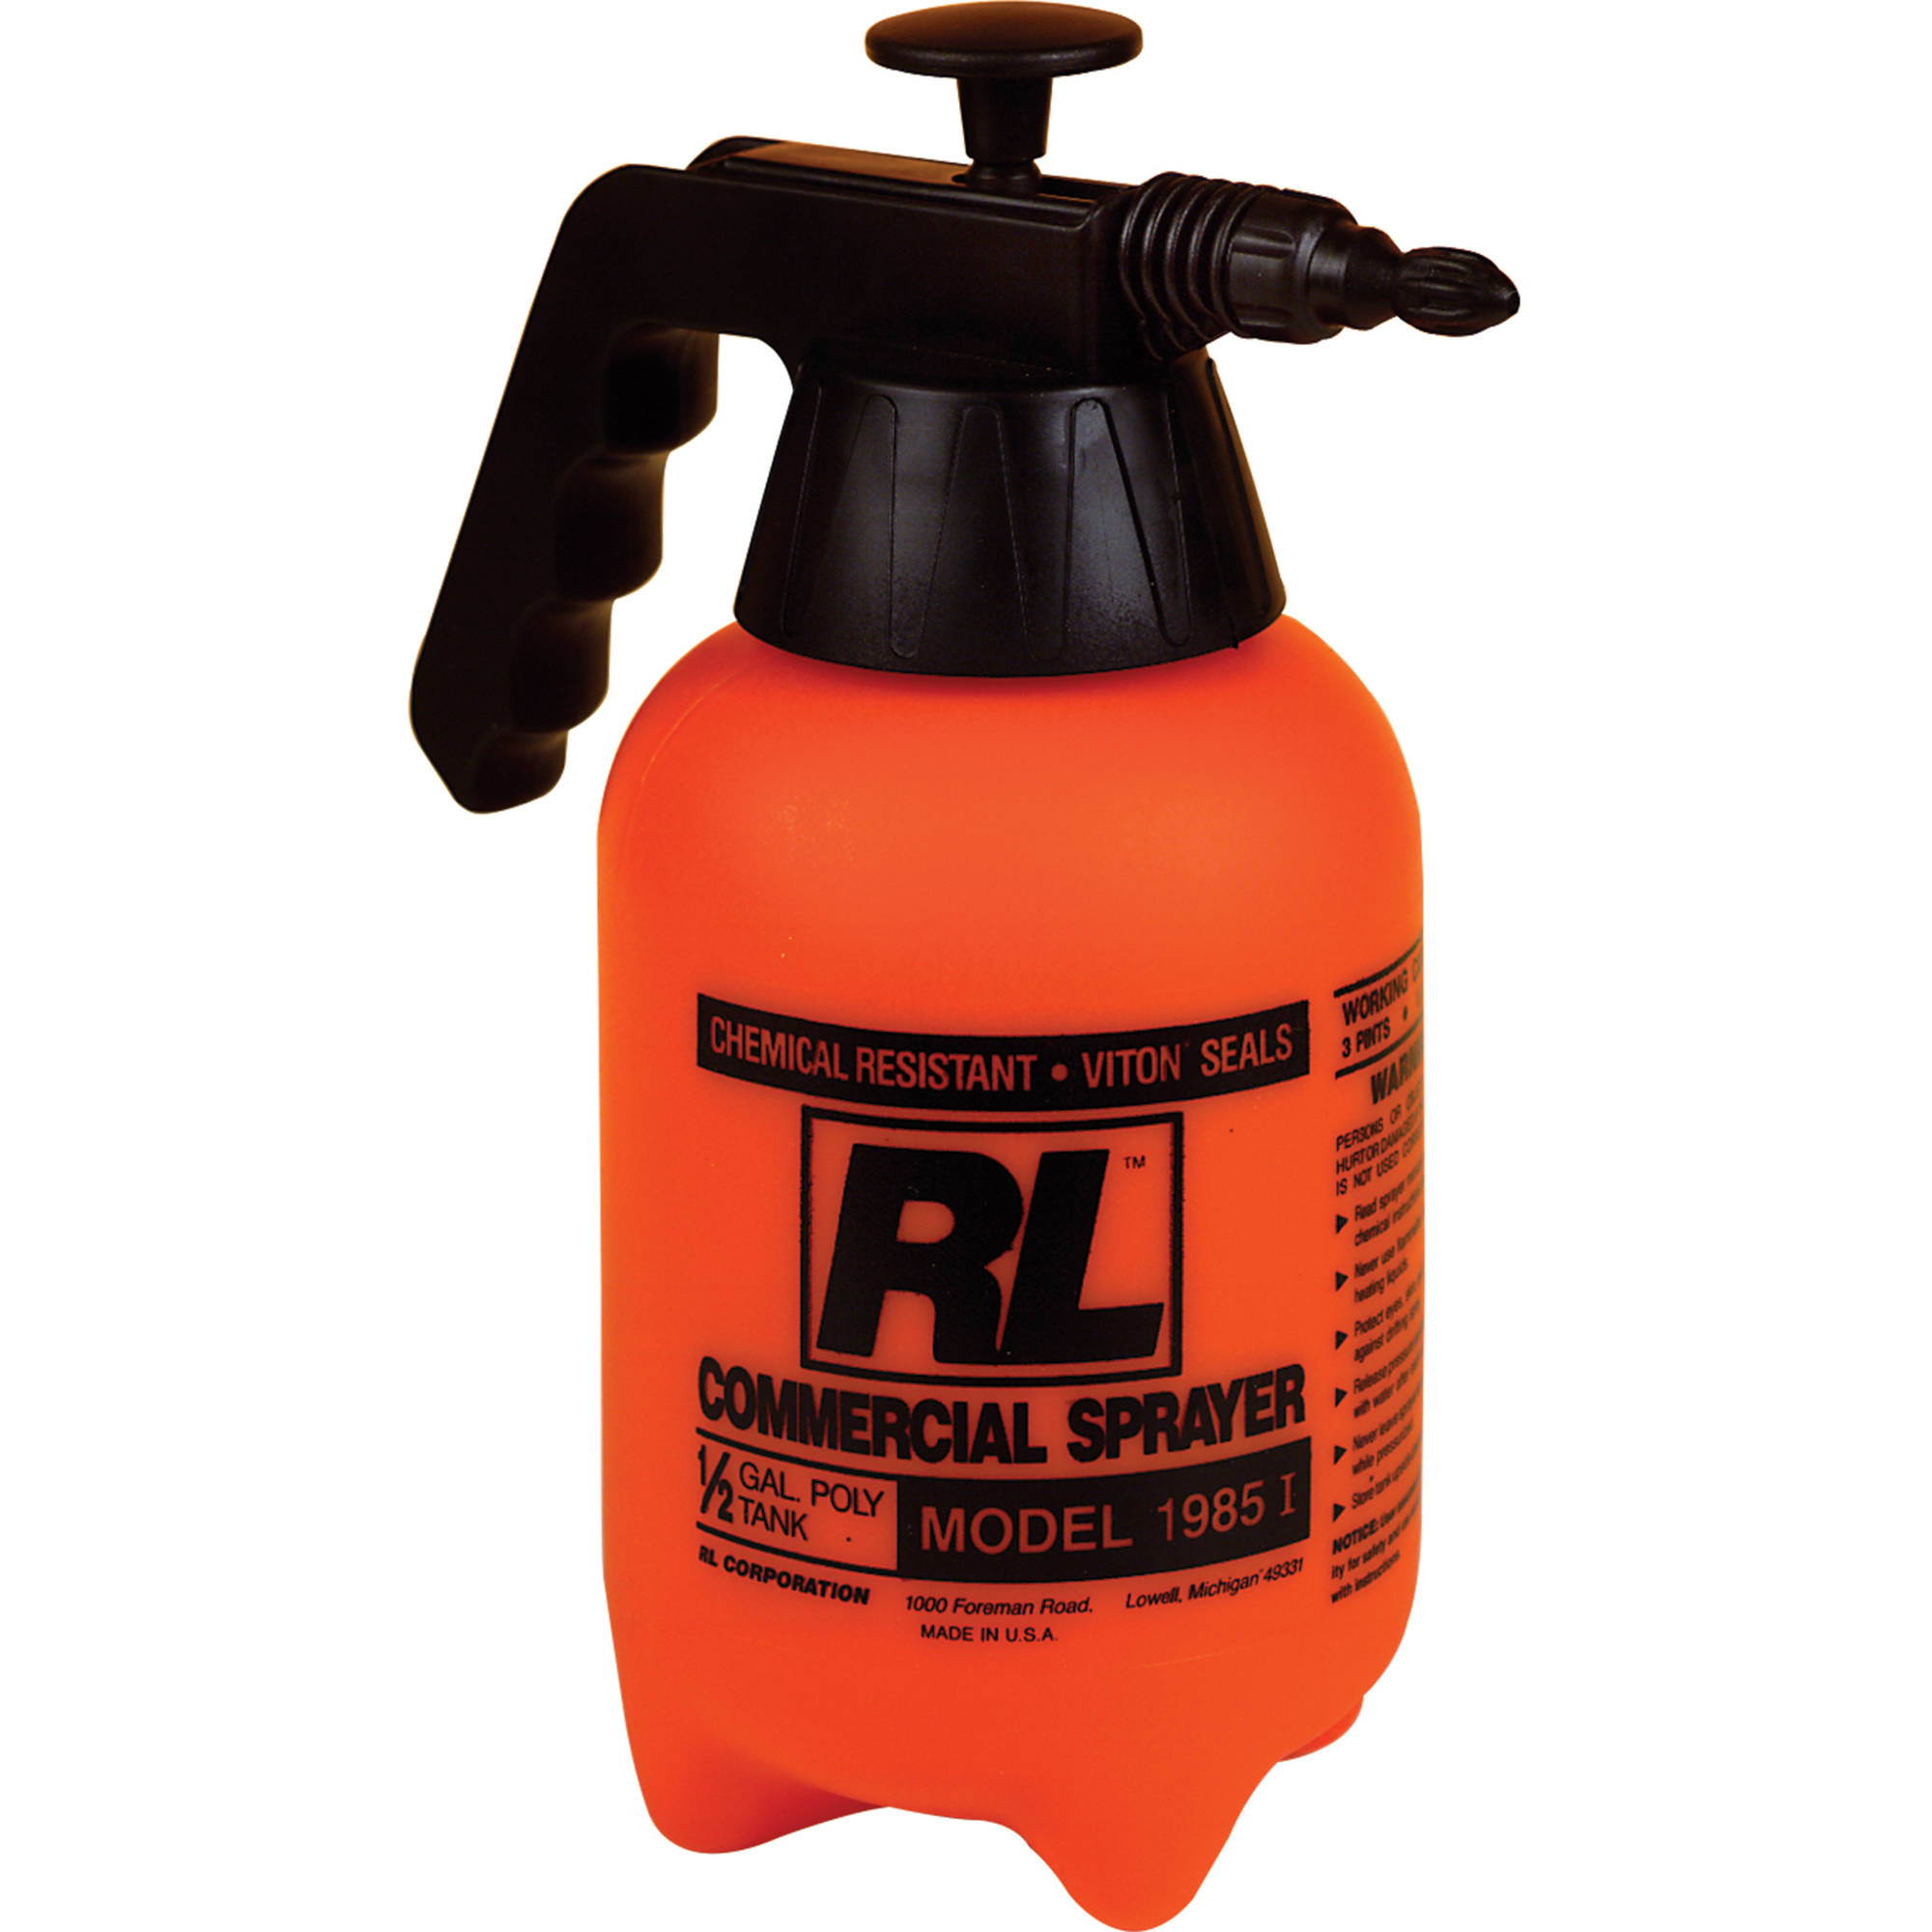 RL Flo-Master 1 2-Gallon Handheld Sprayer by Root Lowell Manufacturing Co.